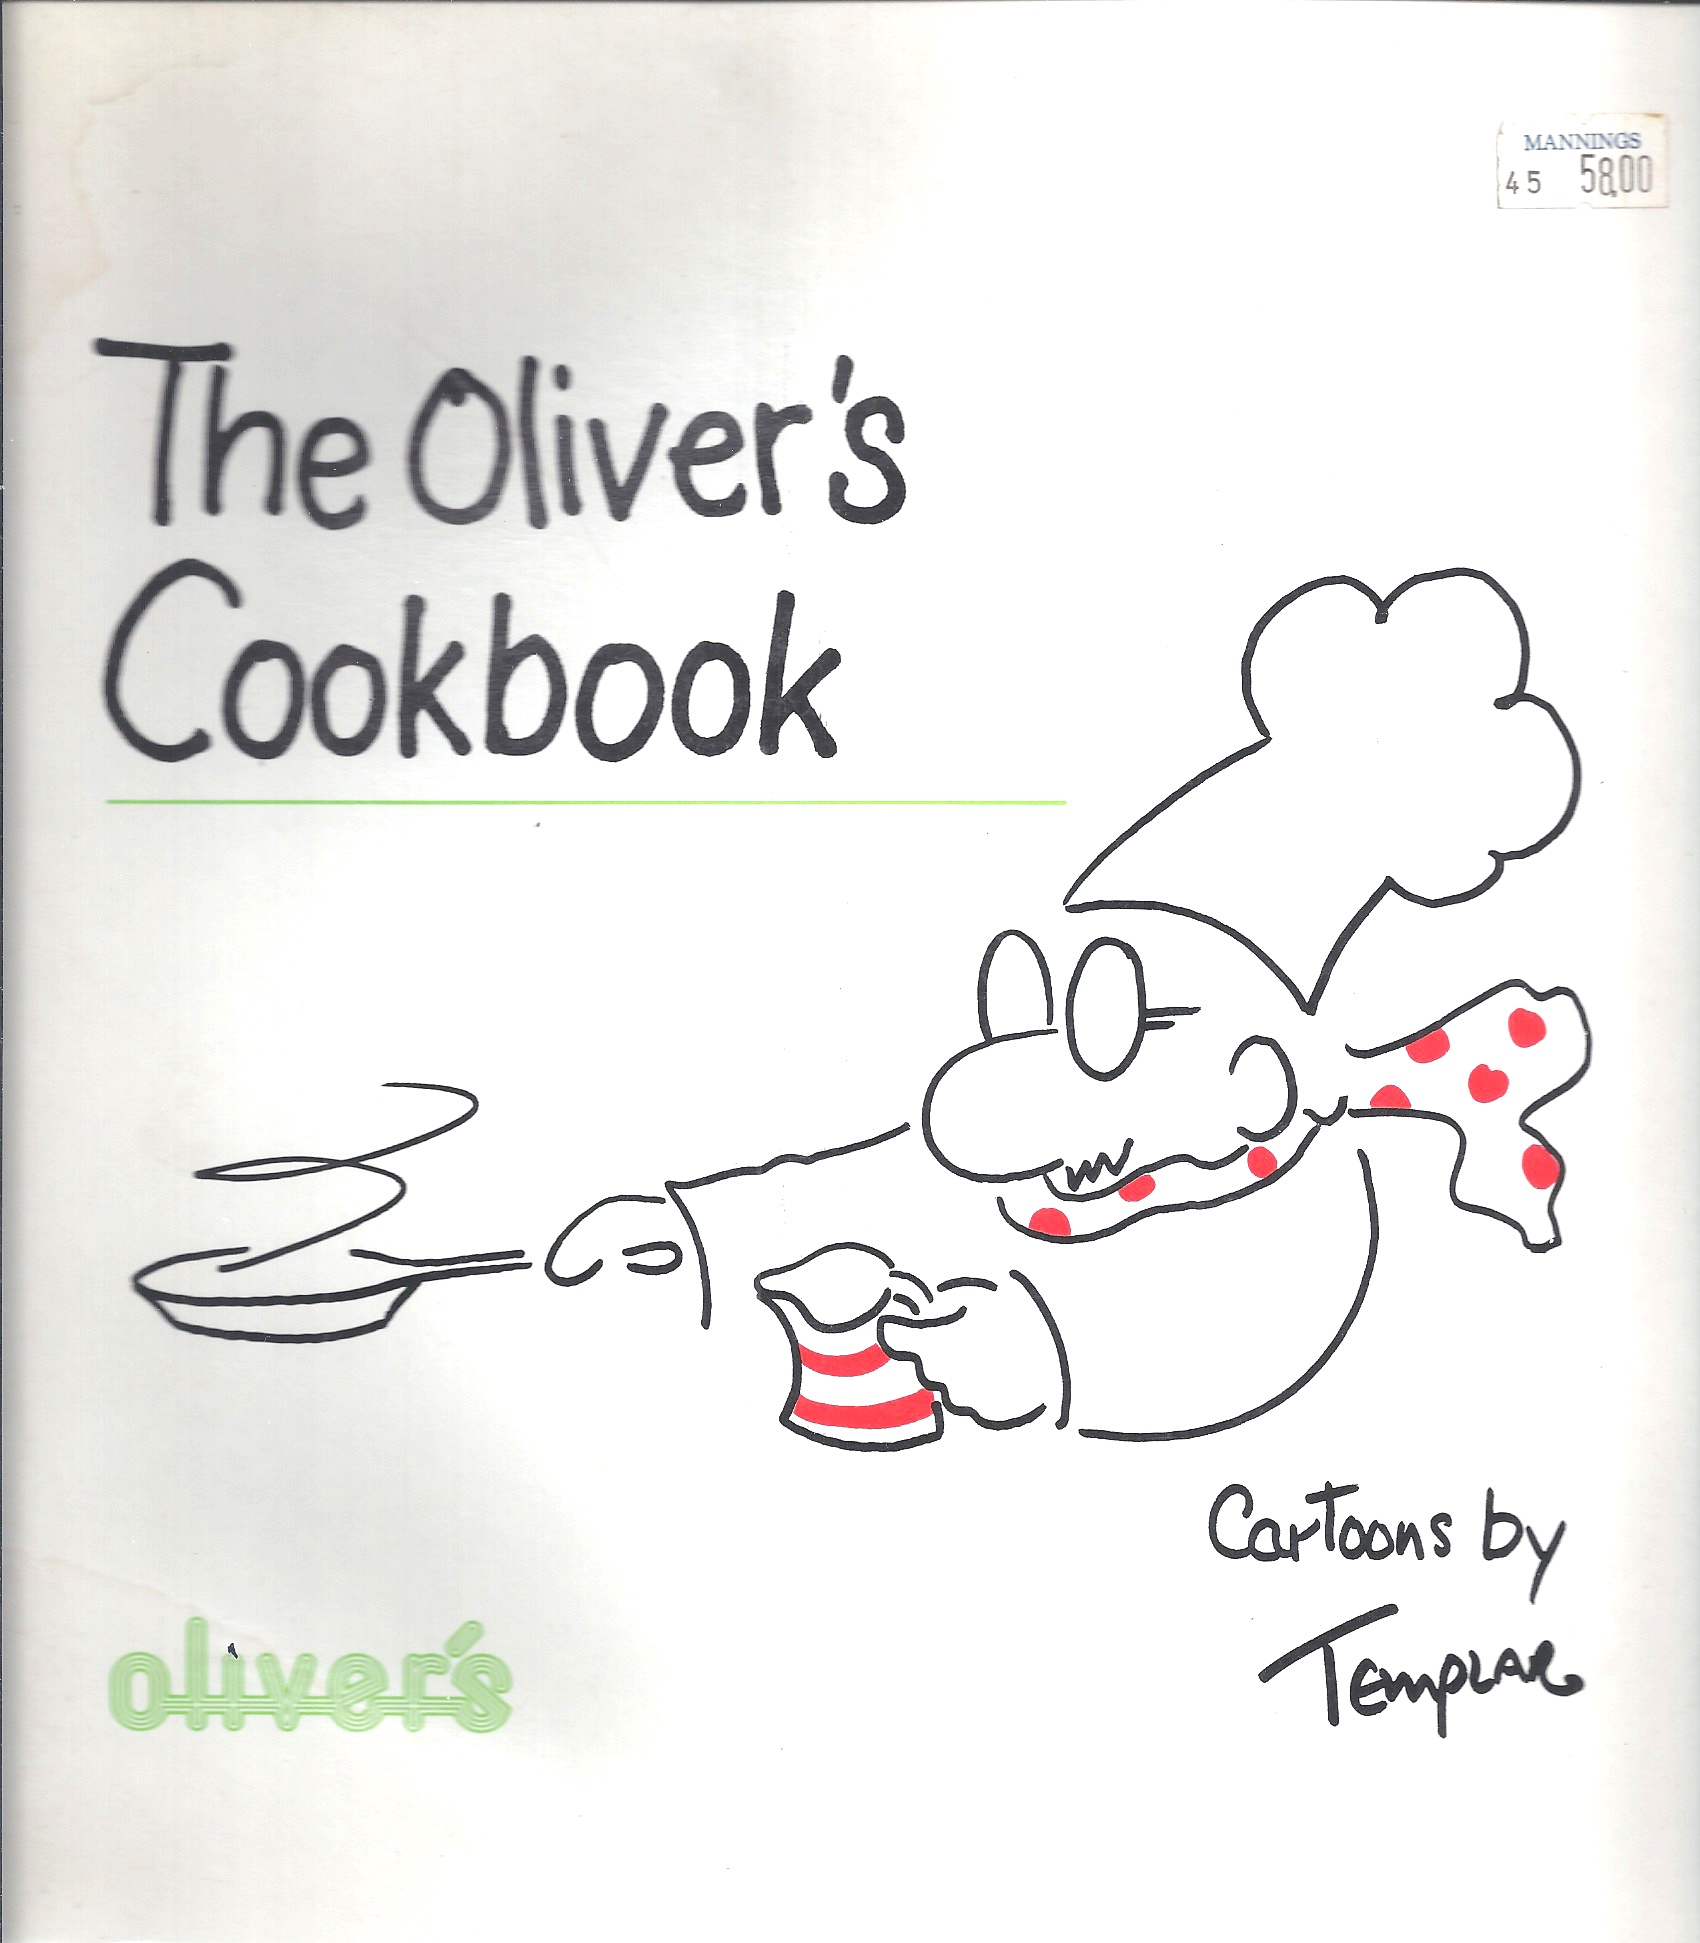 The Oliver's Cookbook